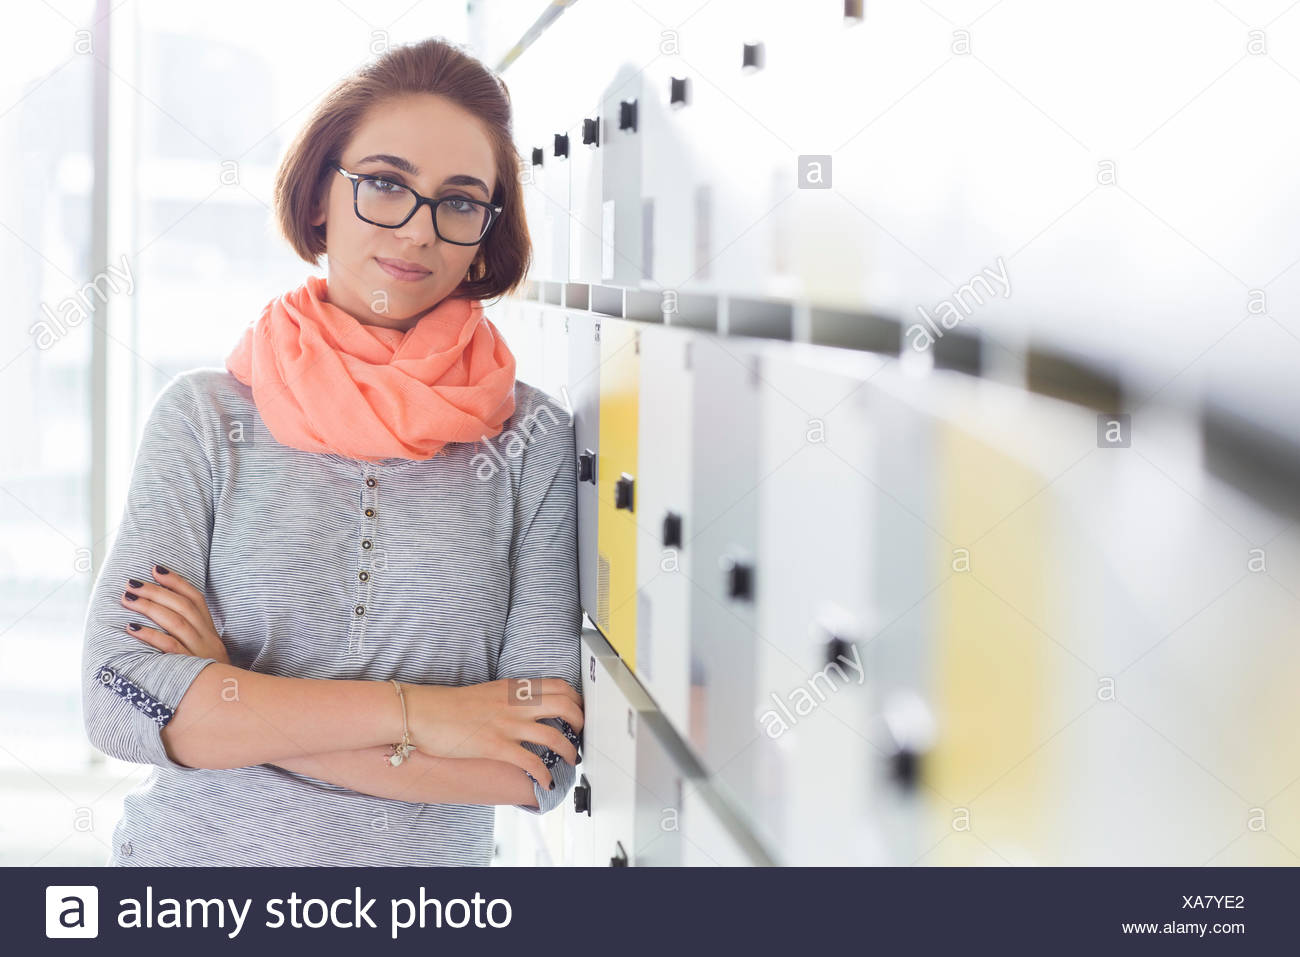 Portrait of confident businesswoman standing arms crossed in locker room at creative office - Stock Image